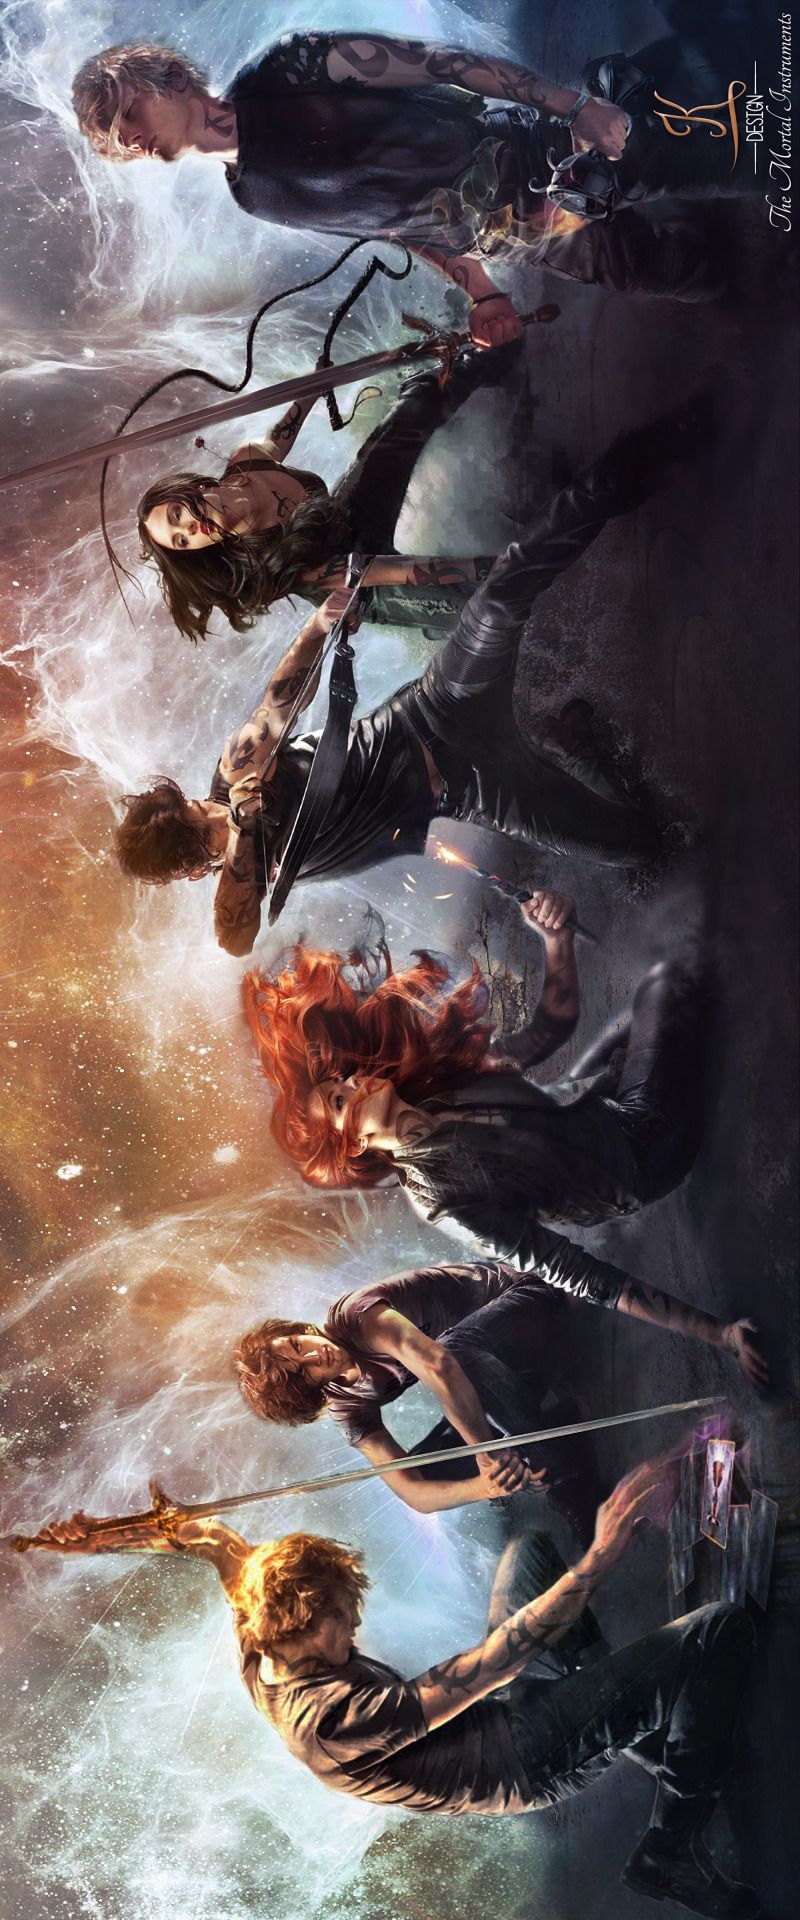 The new TMI covers. simon is just sitting there...well, i think its simon cause hes the only rune-less person :P